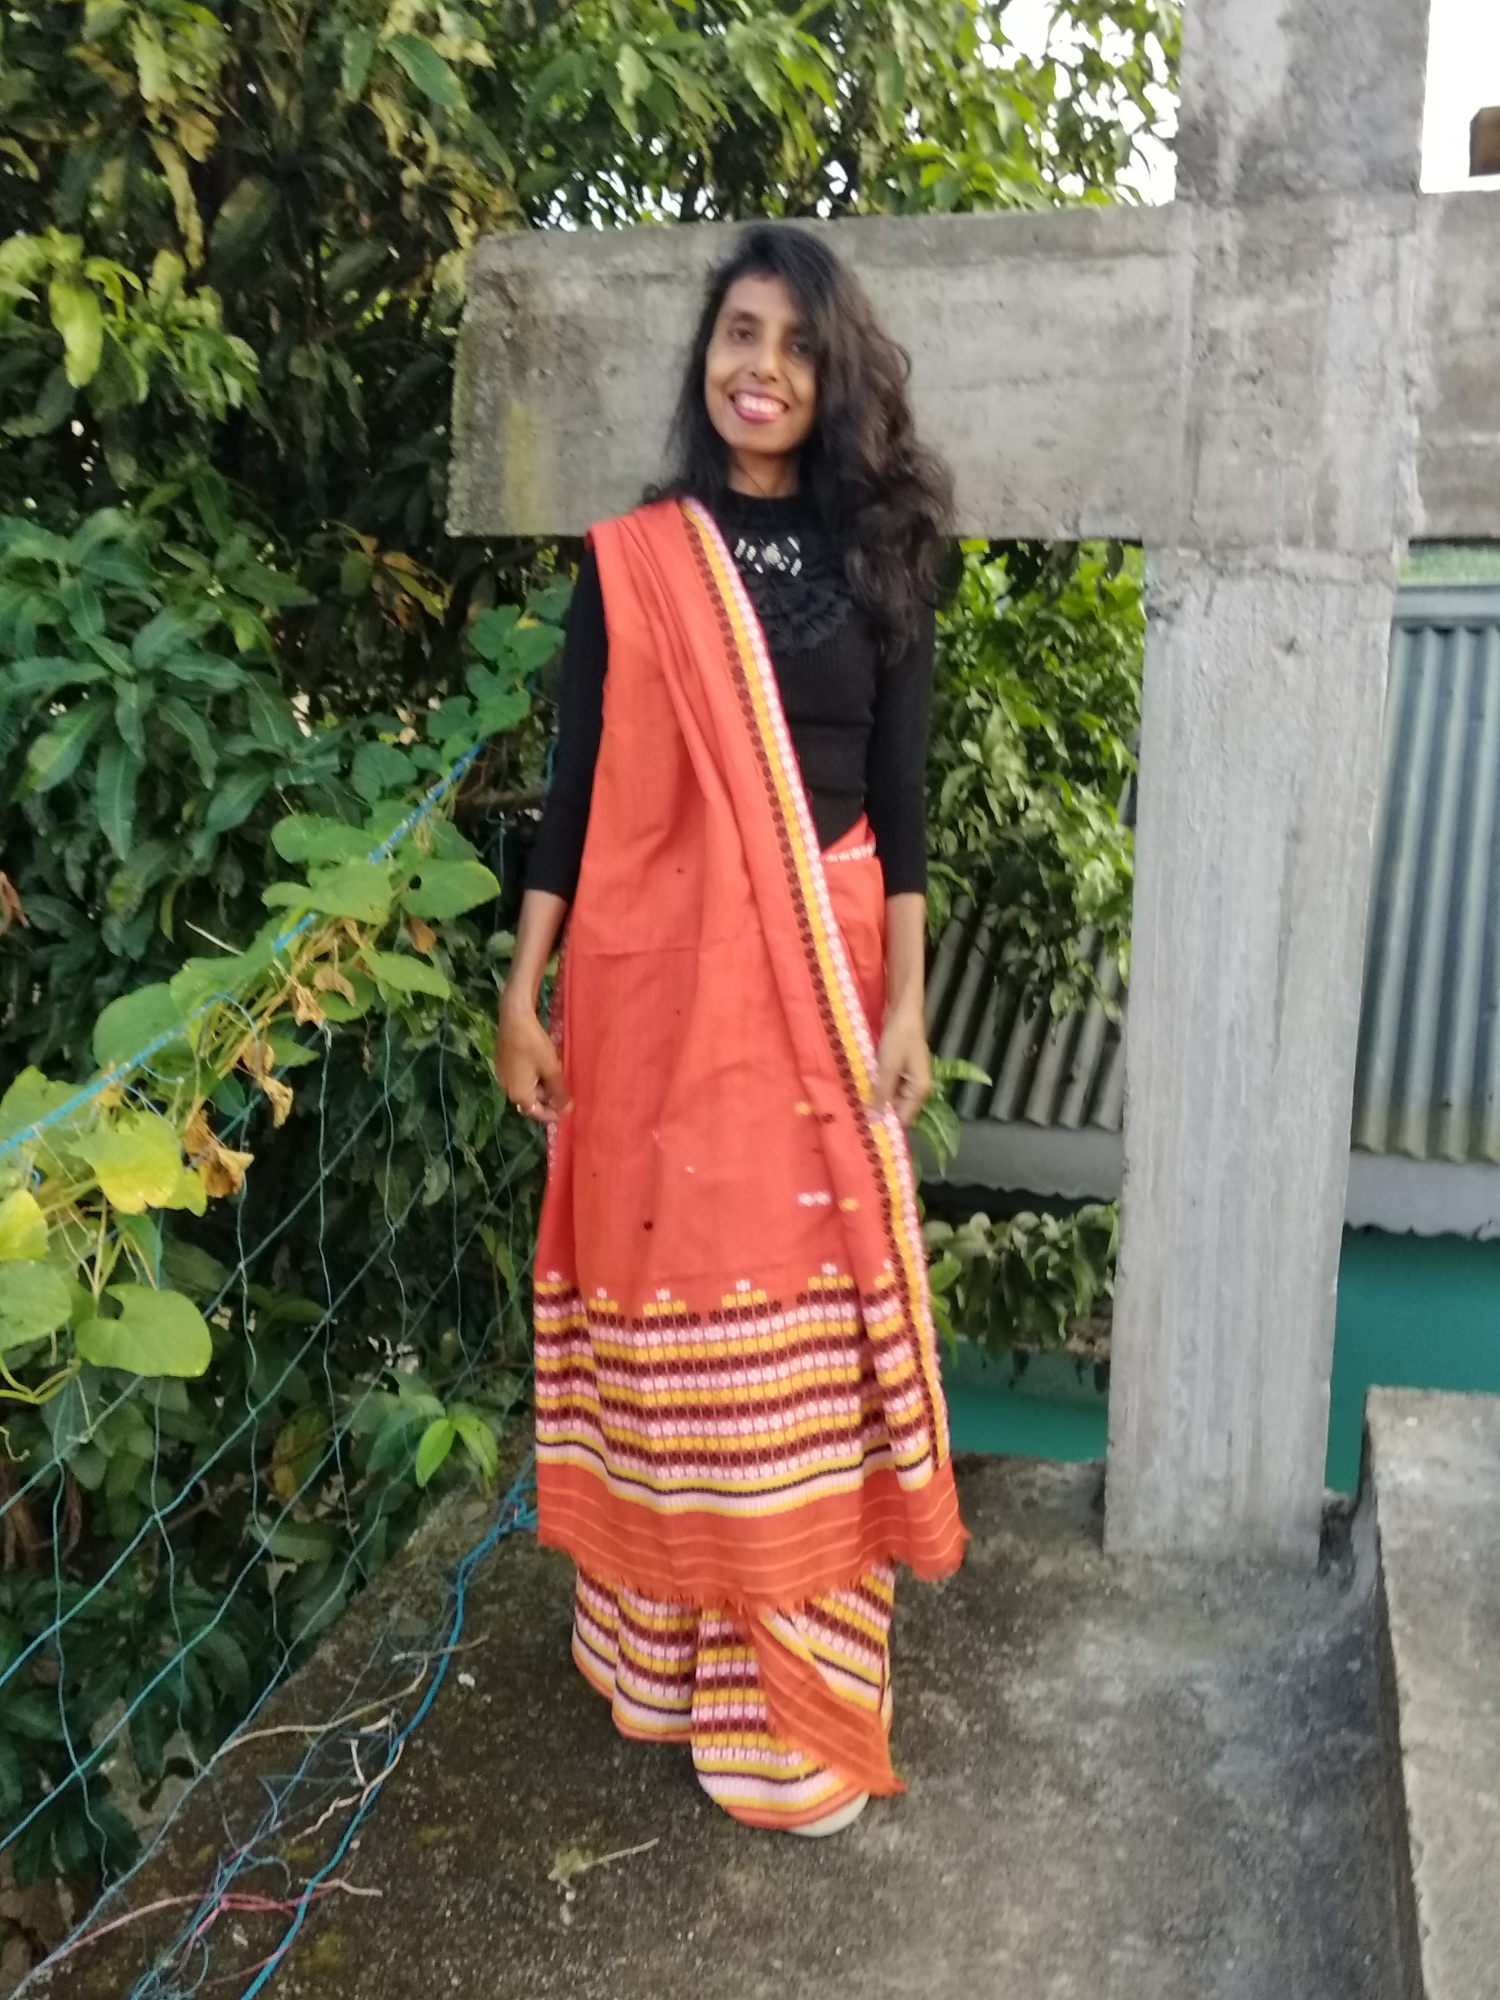 allboutfashion-An ethnic fashion for winter